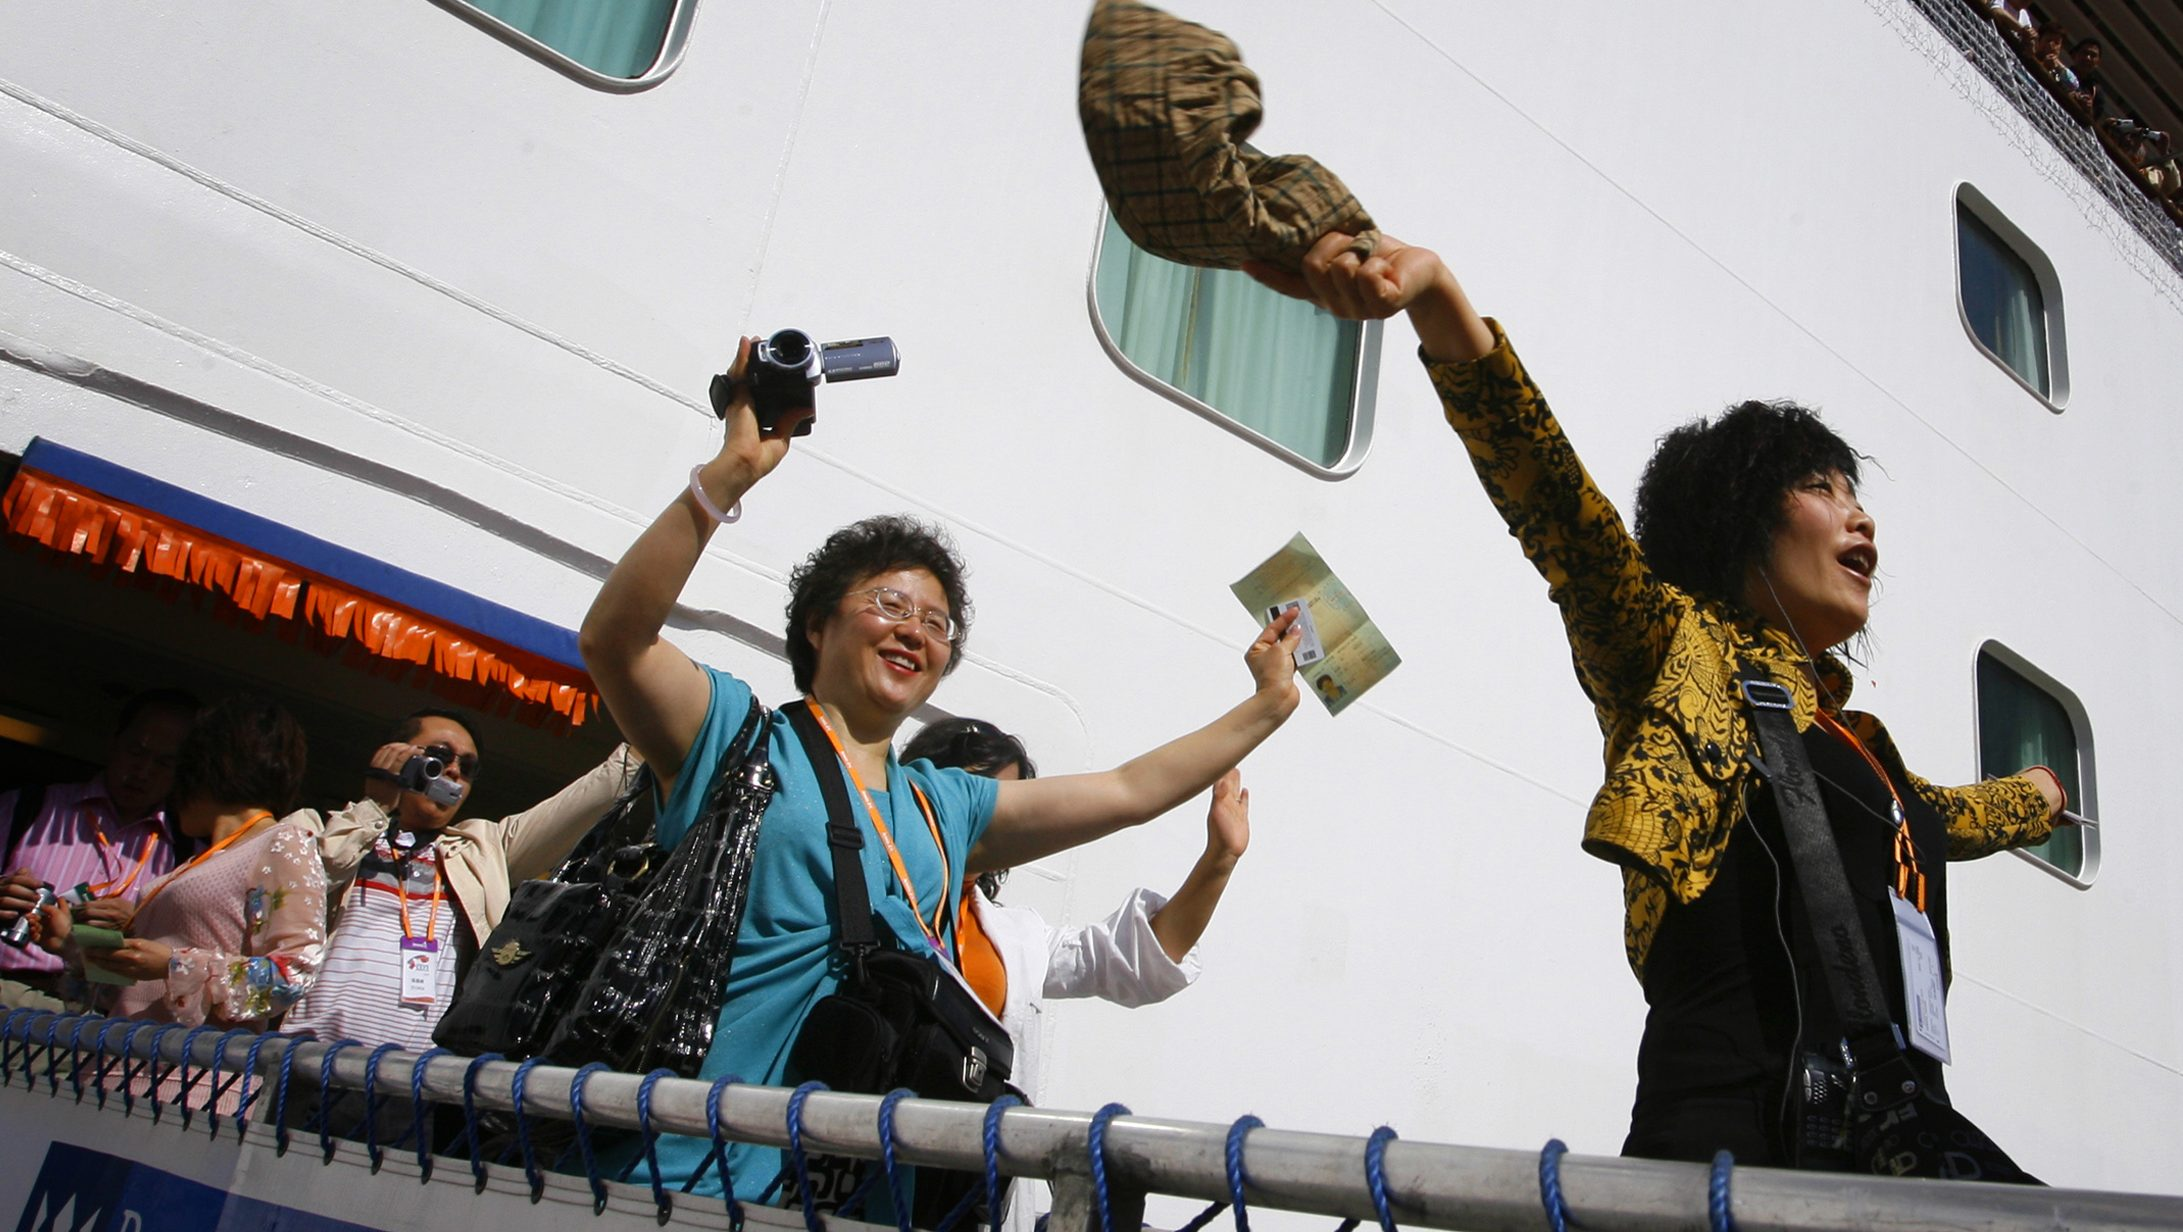 Tourists from China wave as they arrive on a cruise ship in the northern Taiwan port of Keelung March 16, 2009. A total of 1,600 employees from Amway China arrived on Monday, the first large-scale tour group from the mainland via a foreign-owned cruise ship since the opening of direct transport links from the mainland last year. REUTERS/Nicky Loh (TAIWAN POLITICS TRAVEL BUSINESS IMAGE OF THE DAY TOP PICTURE) - RTXCU5A